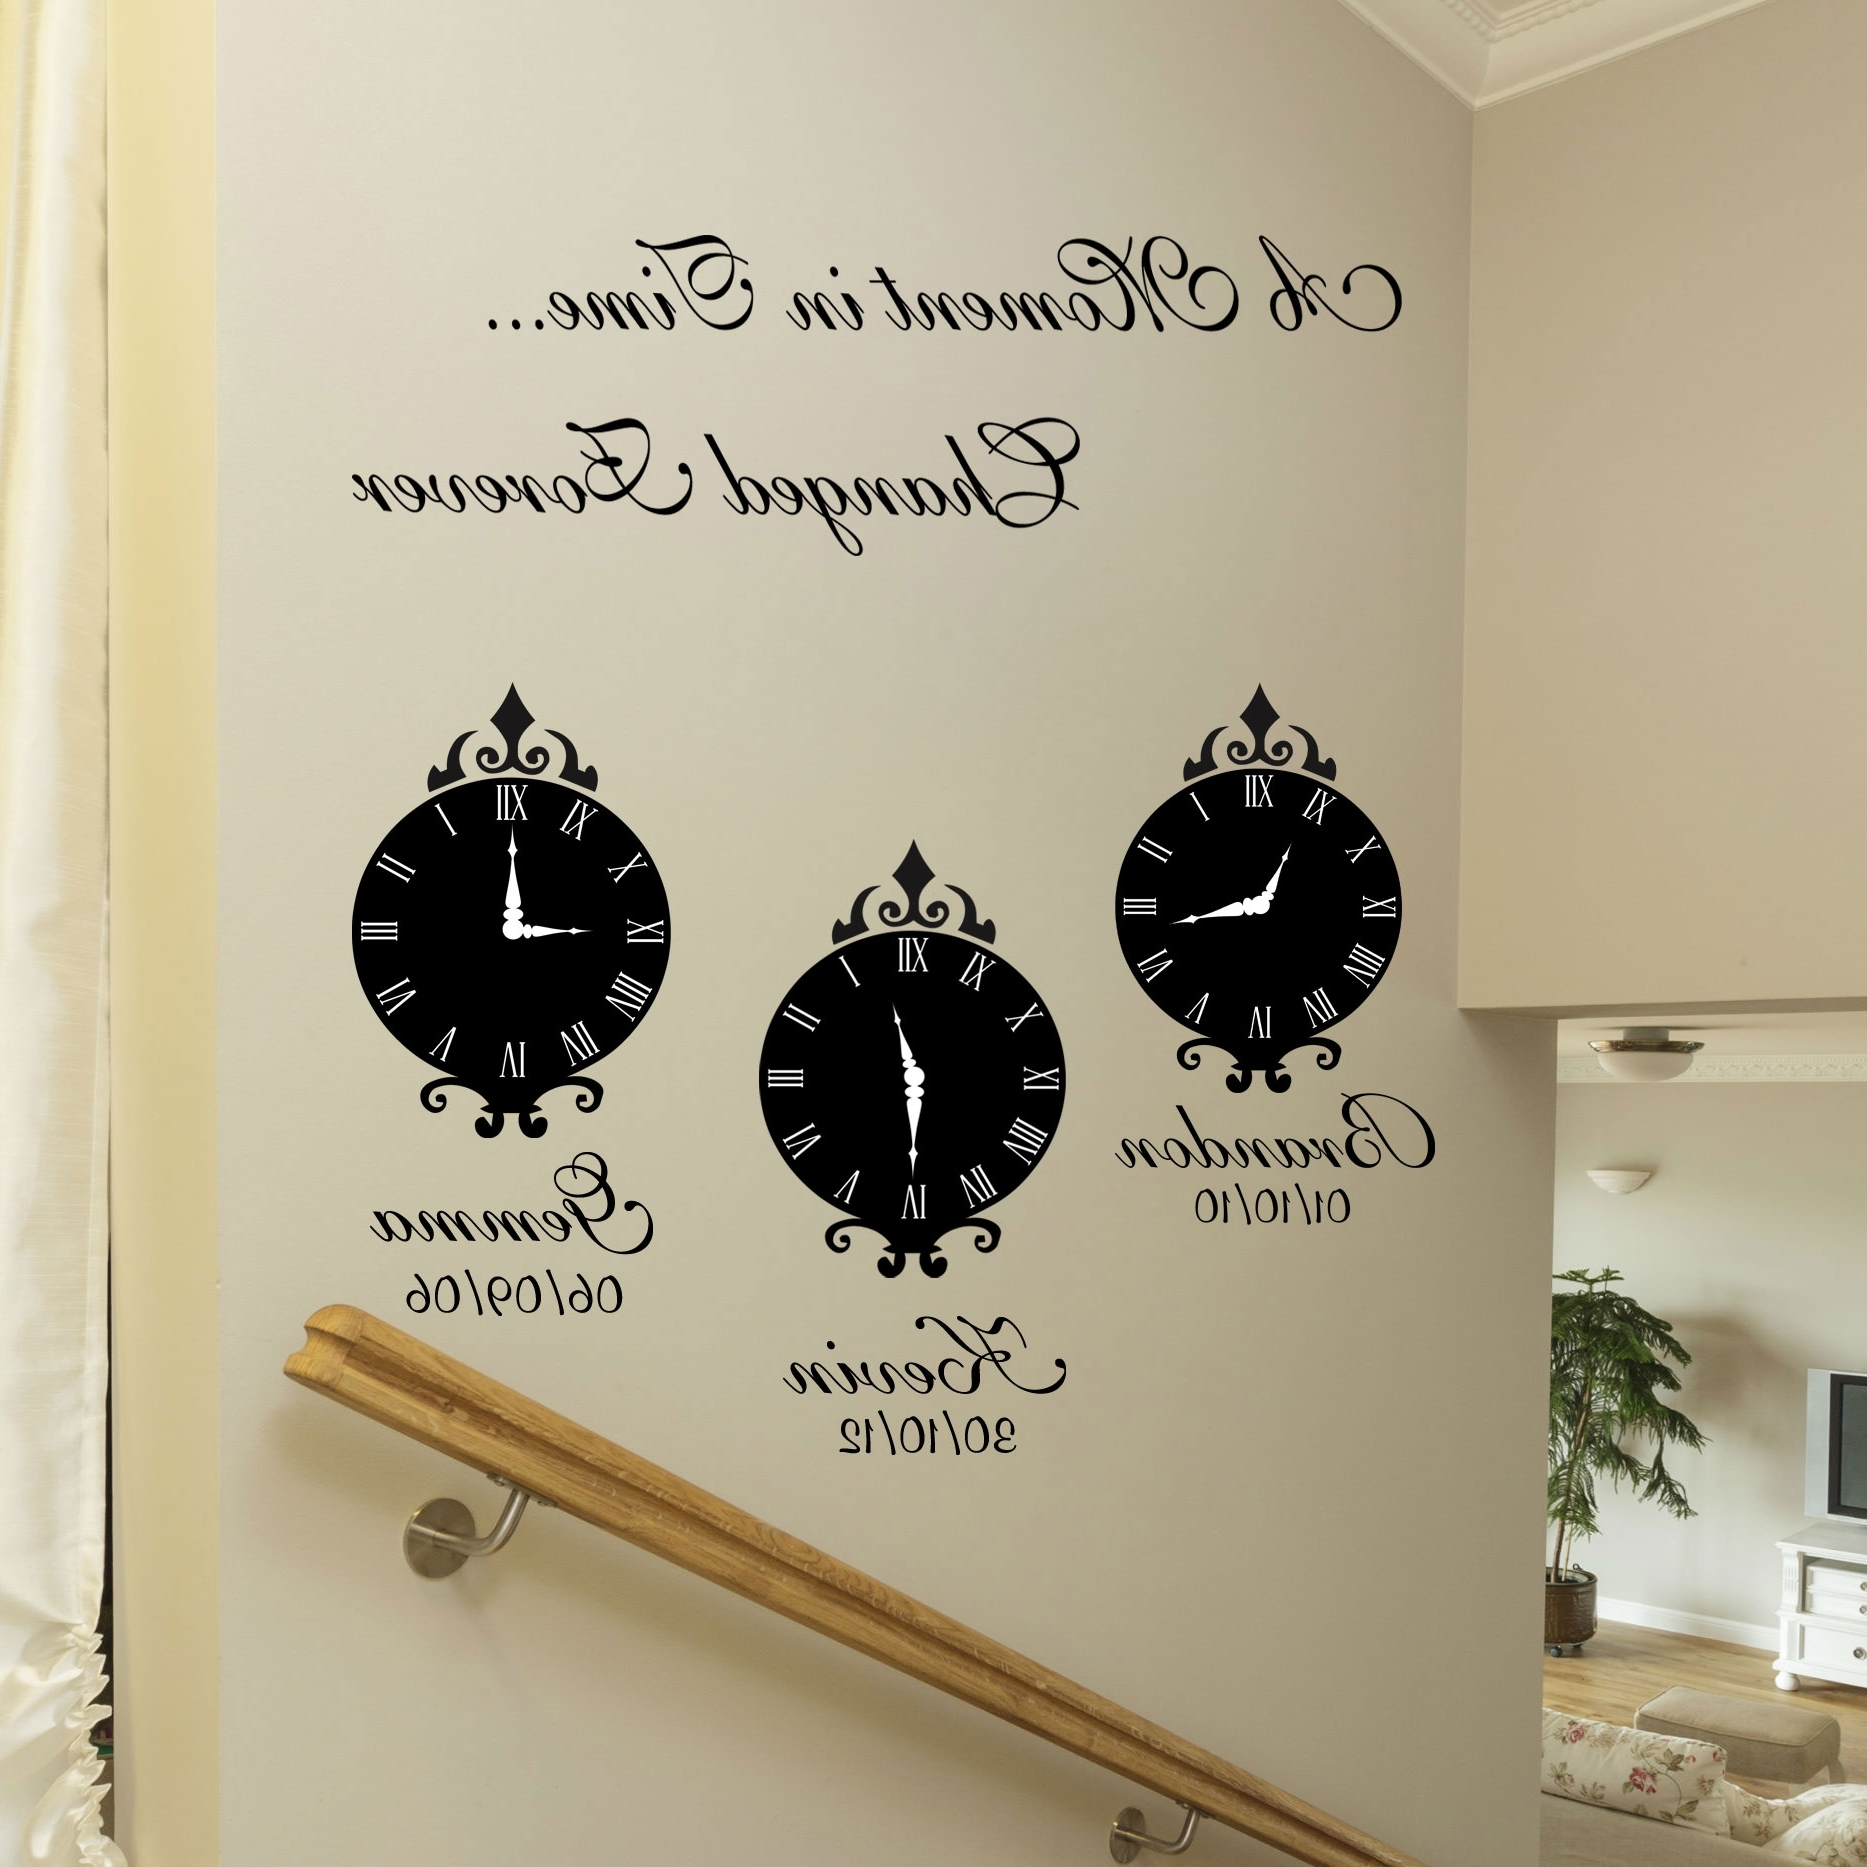 Most Popular A Moment In Time Wall Art Stickers Regarding Family Wall Art (View 7 of 15)